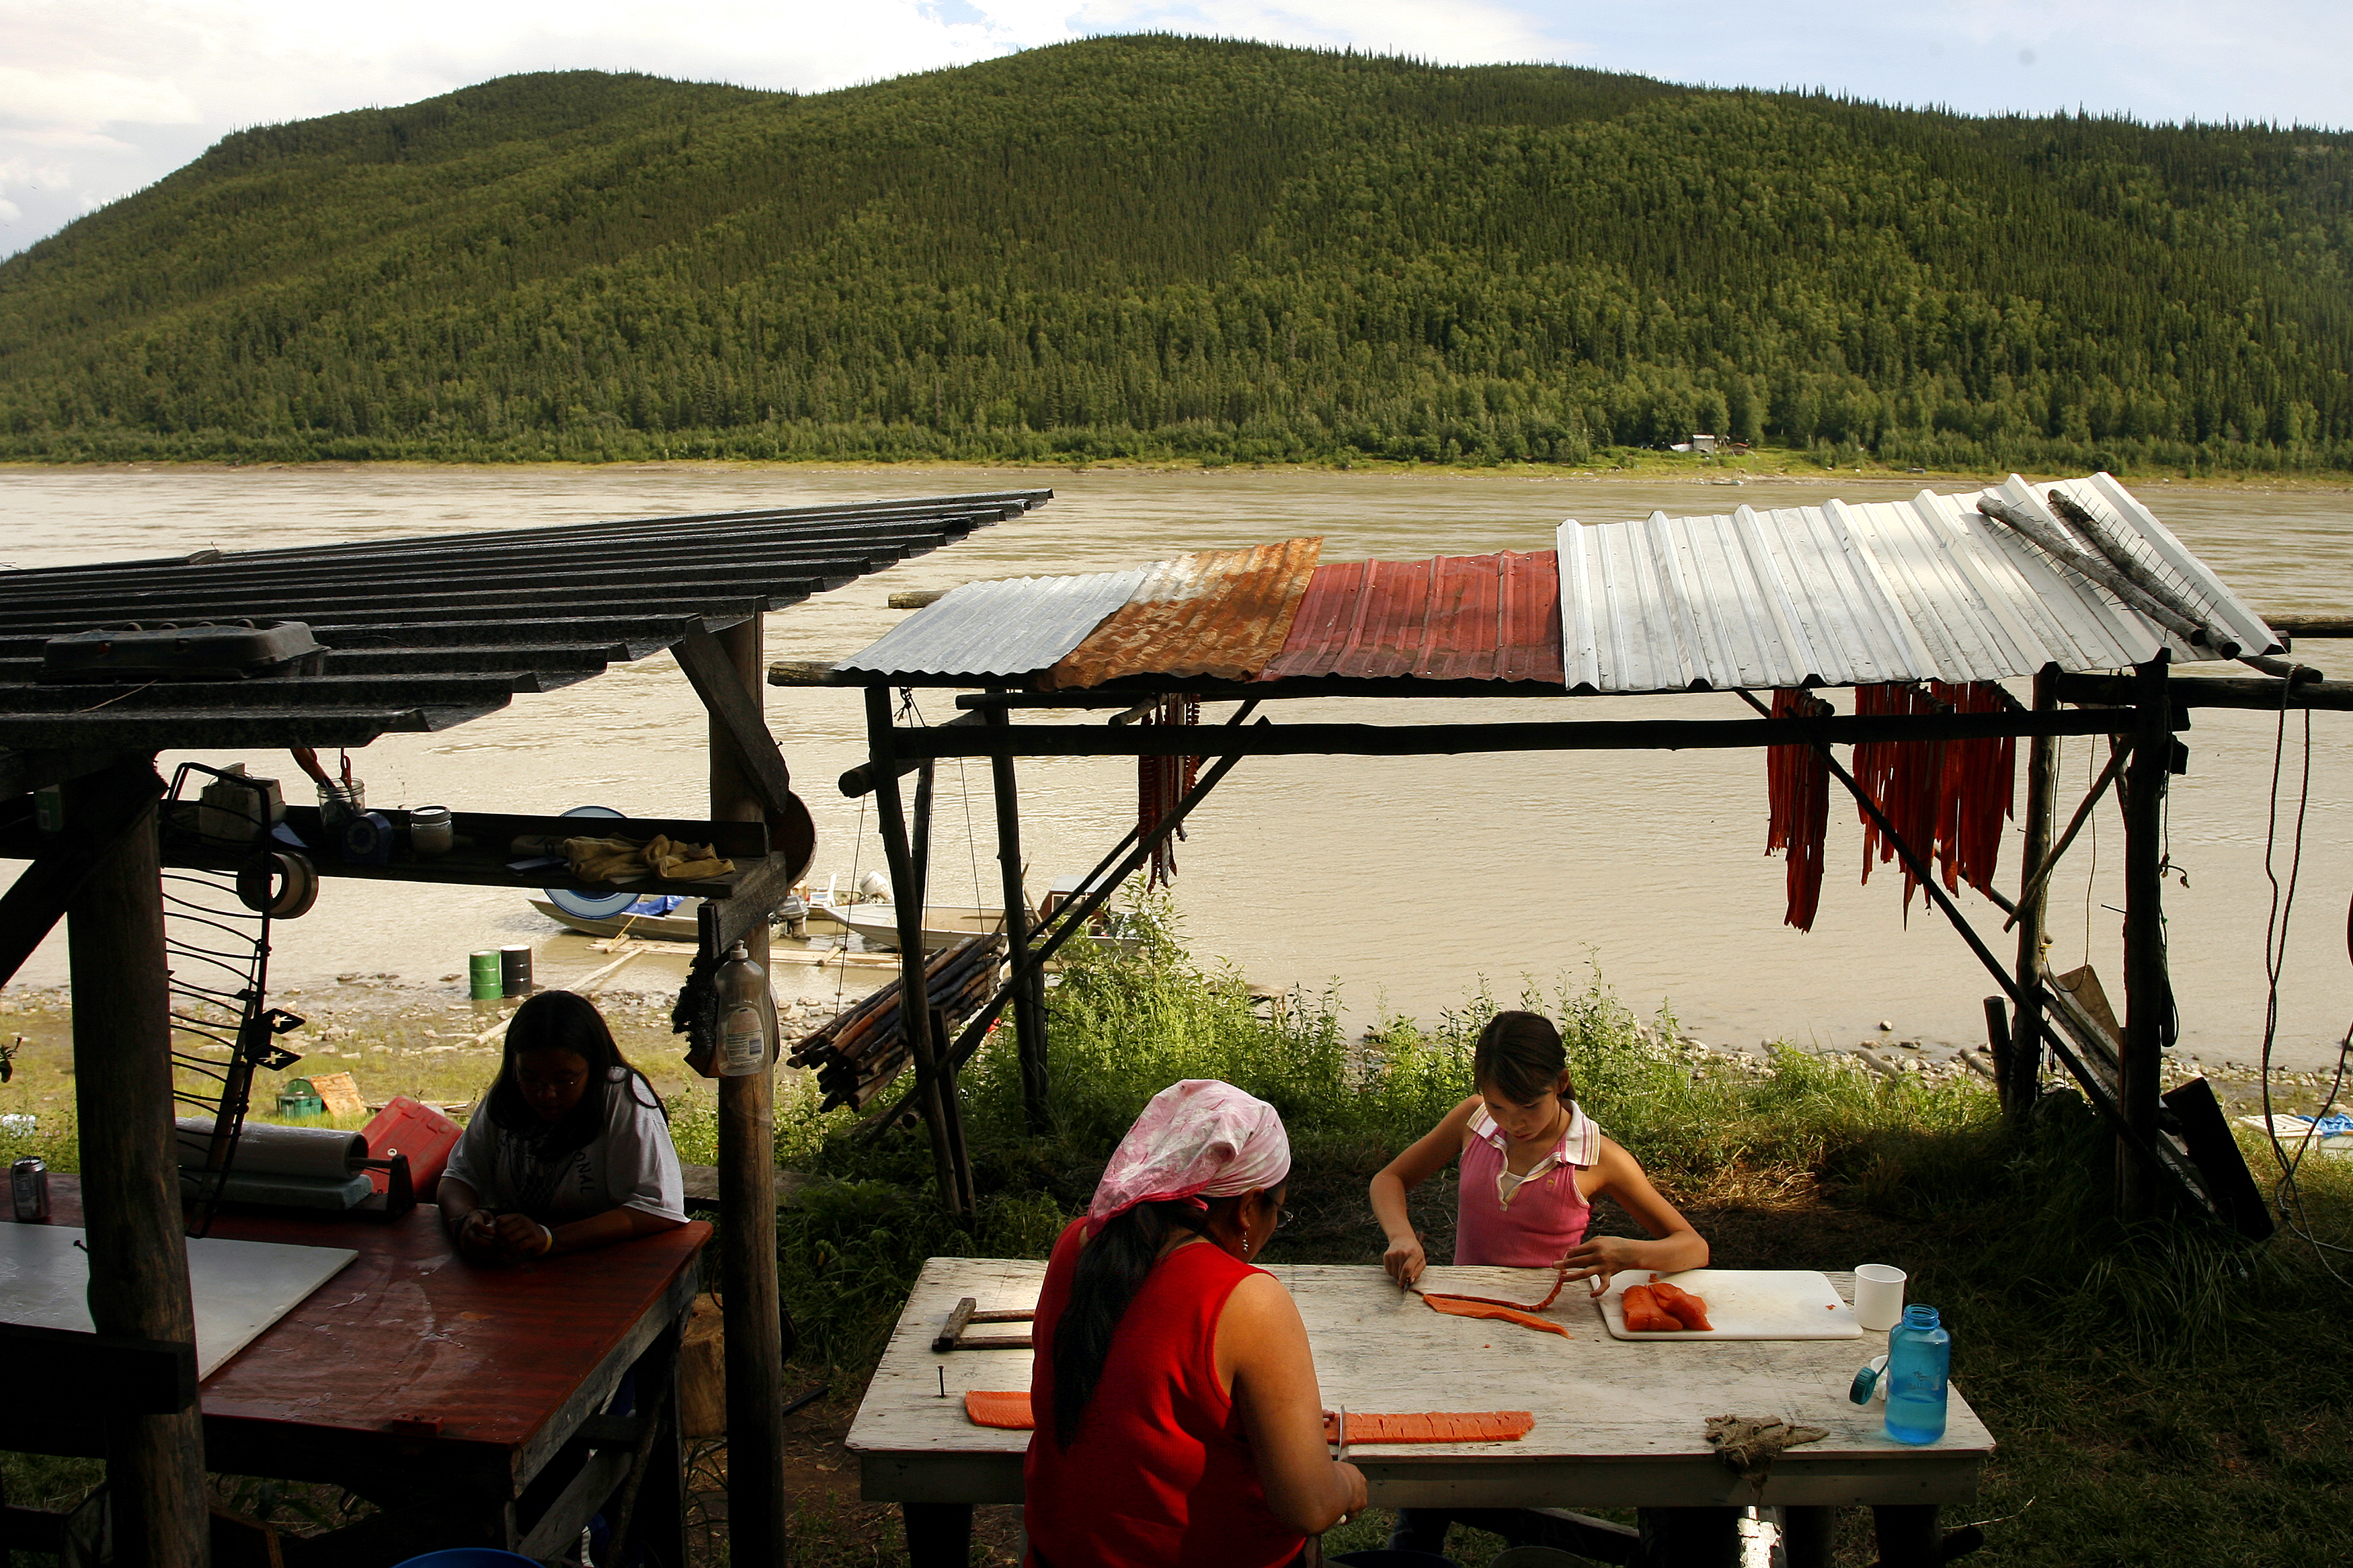 Two figures sit at a picnic table under a roof where salmon filets are drying.